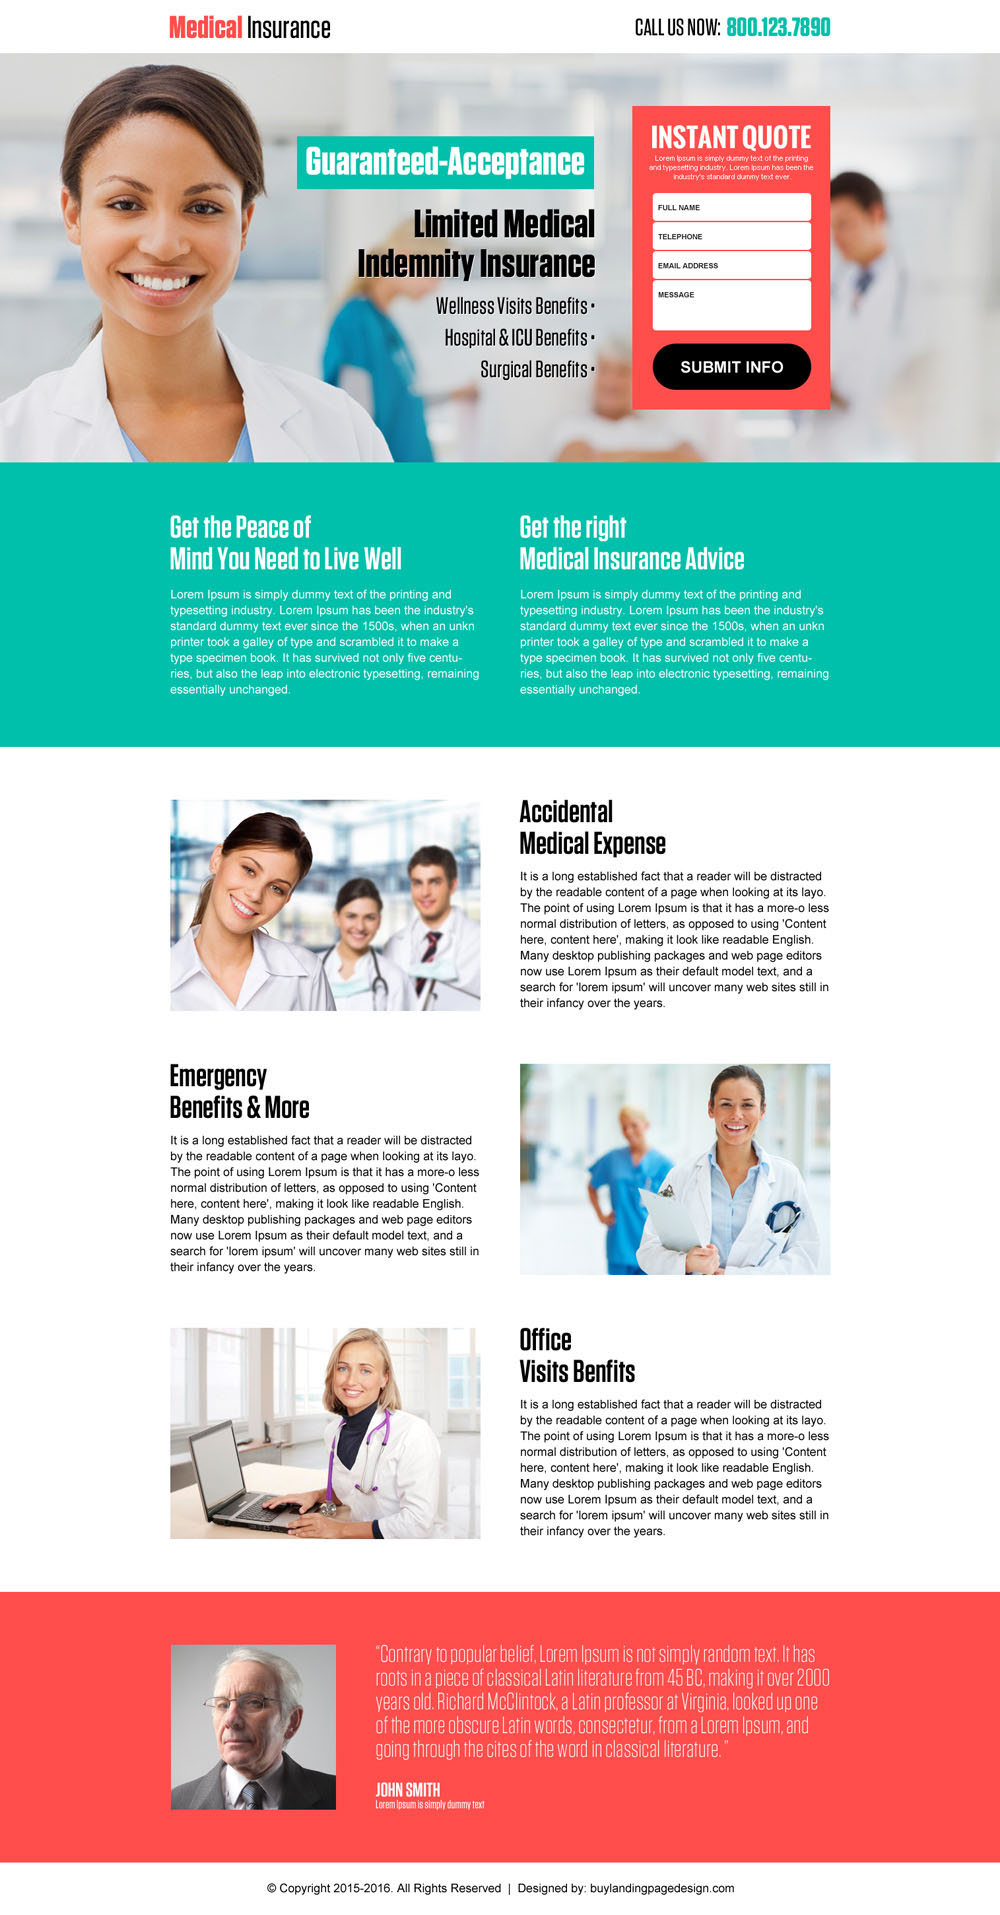 medical-insurance-instant-quote-service-lead-generation-landing-page-design-001_3